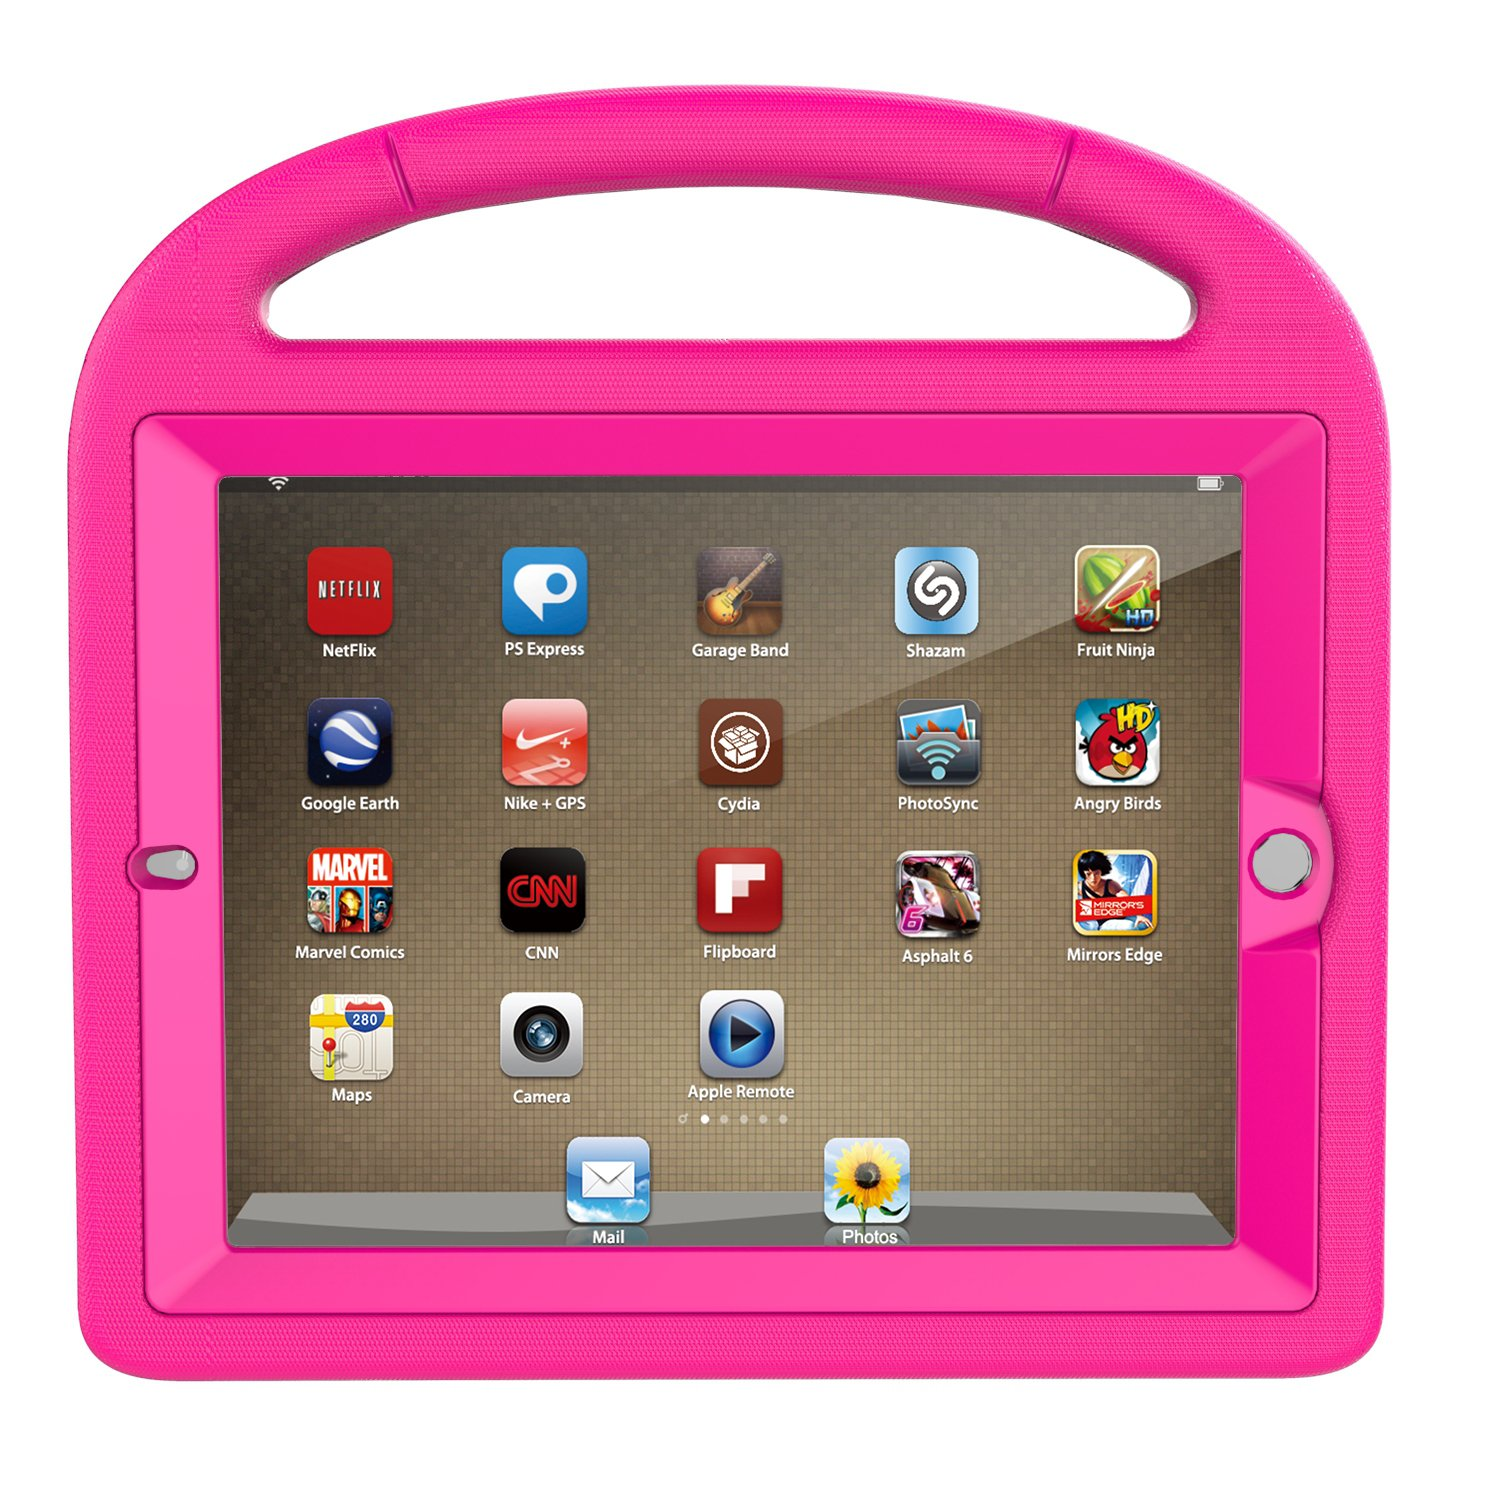 LTROP iPad 2 3 4 Kids Case - Light Weight Shock Proof Handle Friendly Convertible Stand Kids Case with Bulit in Screen Protector for iPad 2, iPad 3rd Generation, iPad 4th Generation,Rose by LTROP (Image #2)